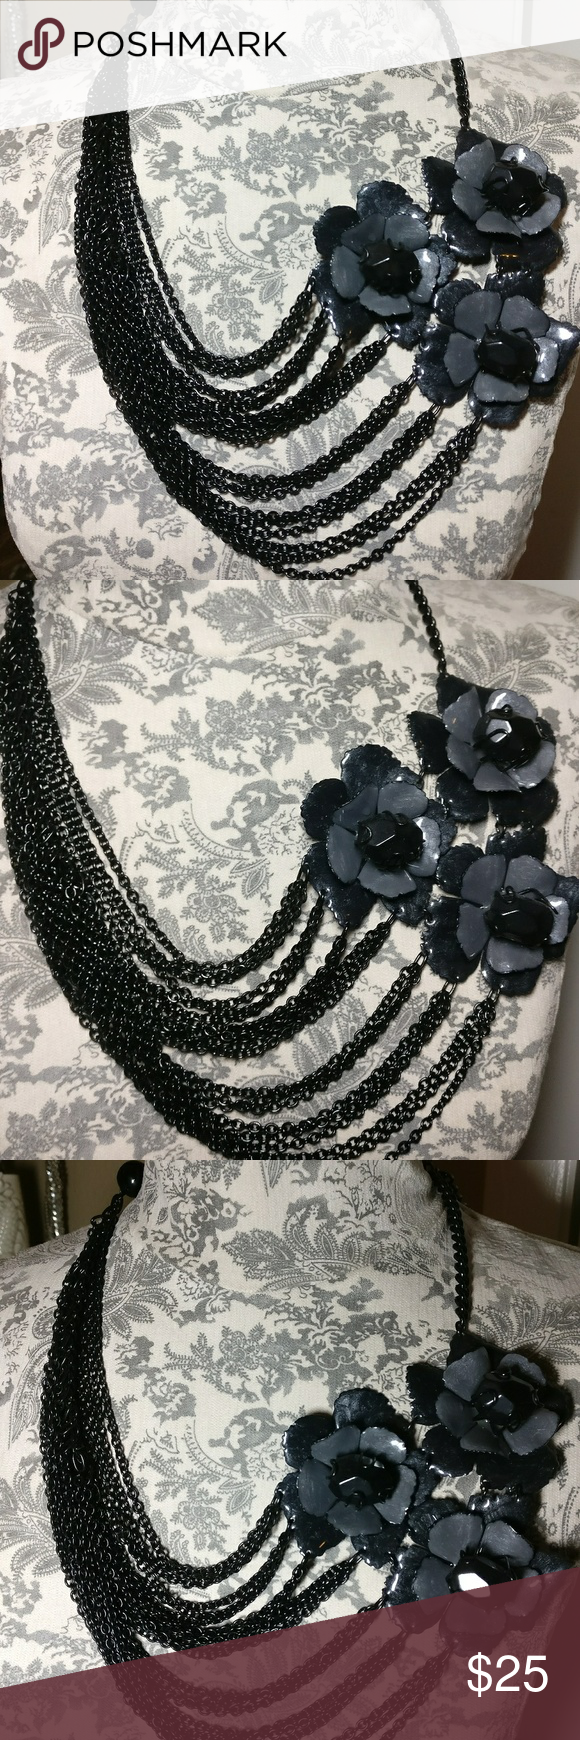 Express Large Black Gray/Silver Statement Necklace In great condition.  Very eye-catching.  Adjustable length.  Please use photos as a description. Express Jewelry Necklaces